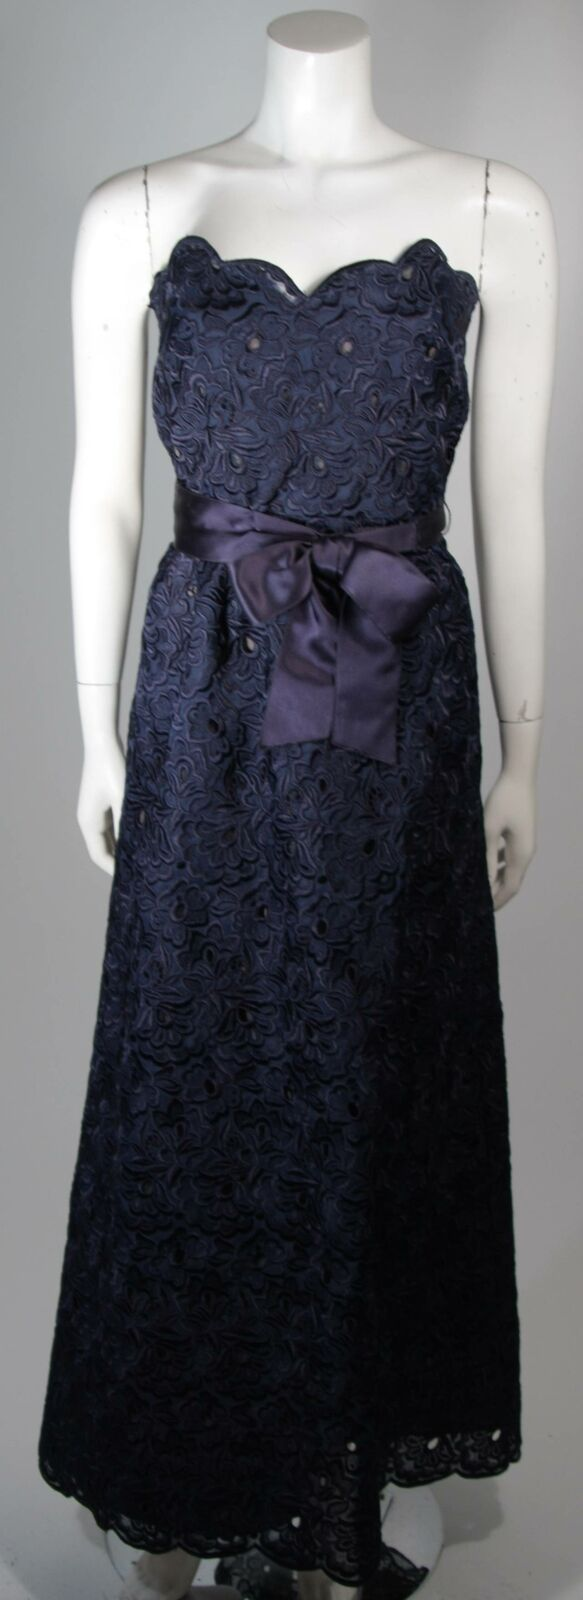 ARNOLD SCAASI Navy Floral Lace Gown Satin Belt Si… - image 2